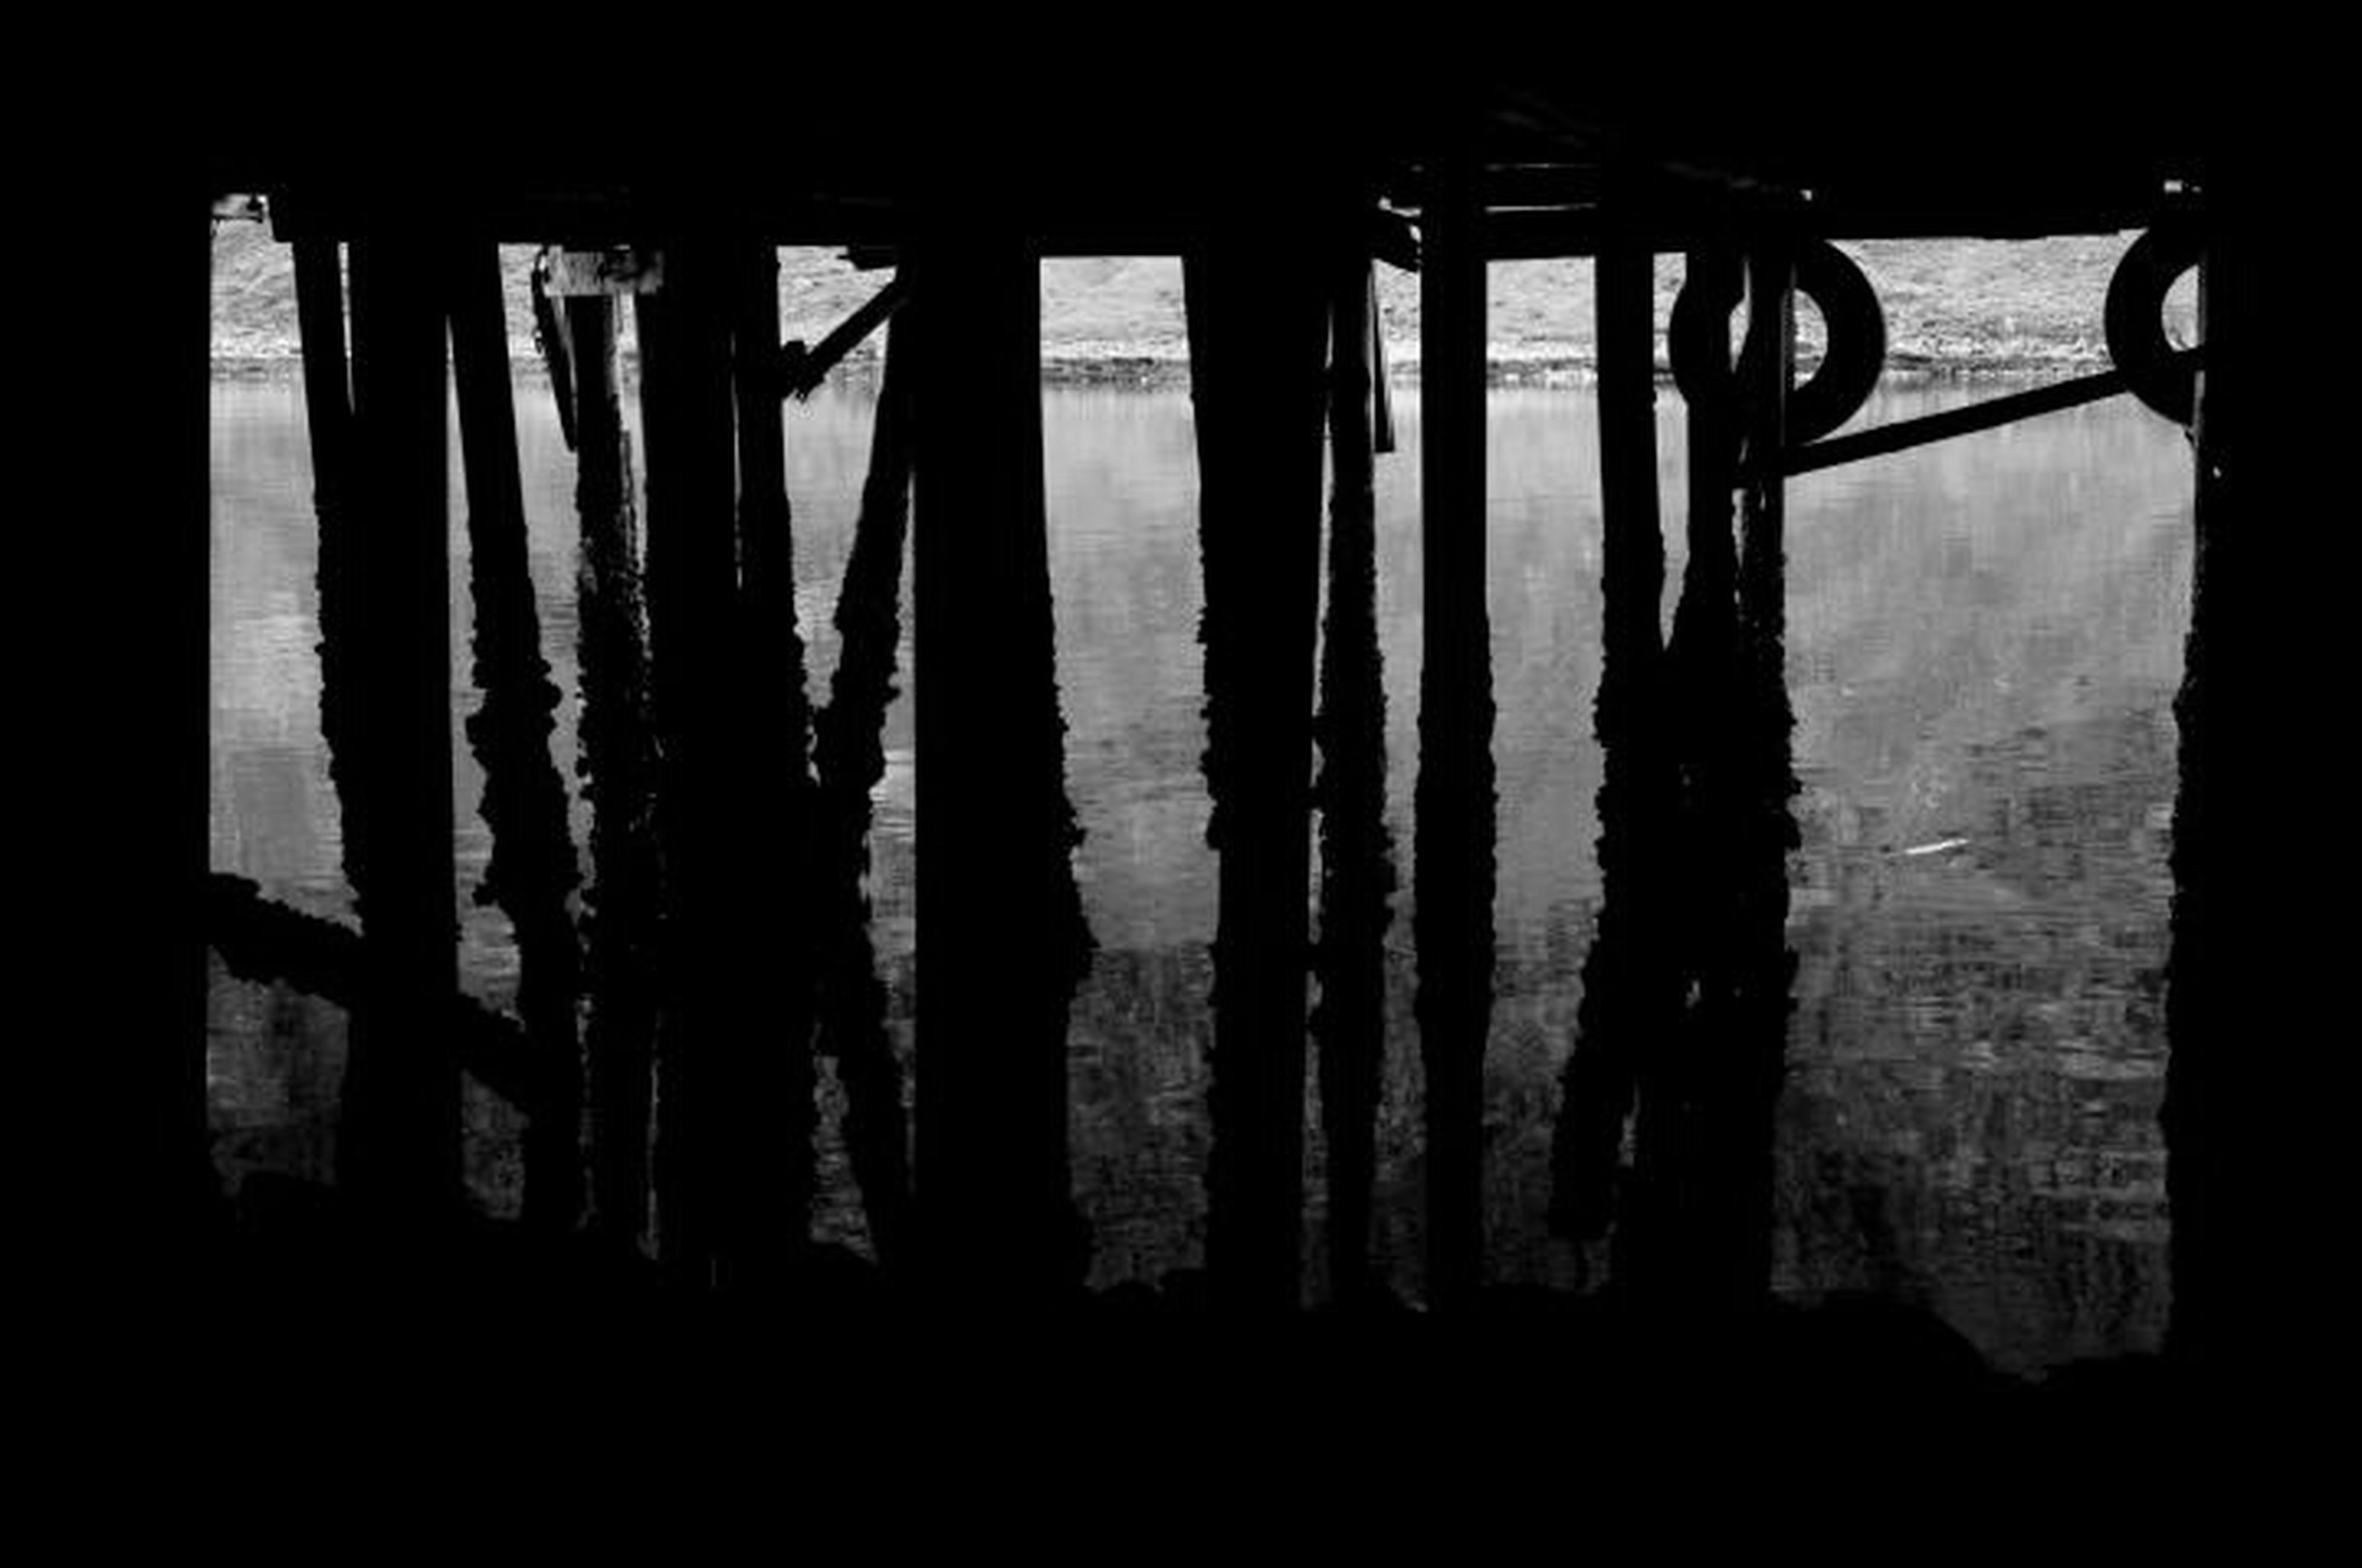 dark, silhouette, indoors, shadow, in a row, night, sunlight, reflection, no people, wood - material, auto post production filter, nature, side by side, water, column, tranquility, built structure, empty